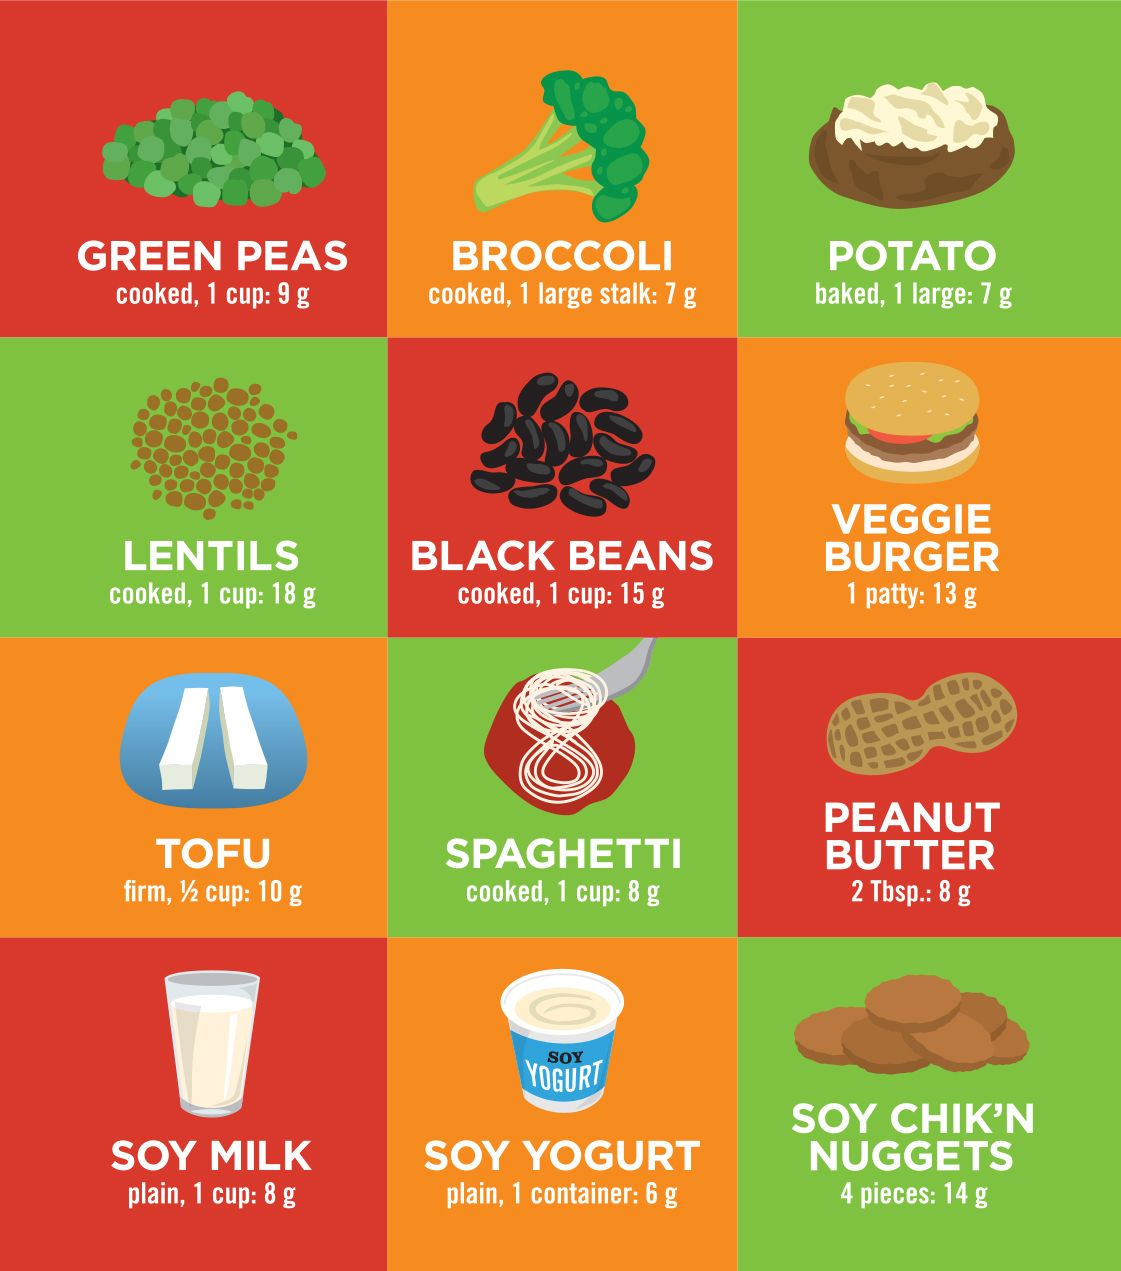 Free where do you get your protein card vegan protein